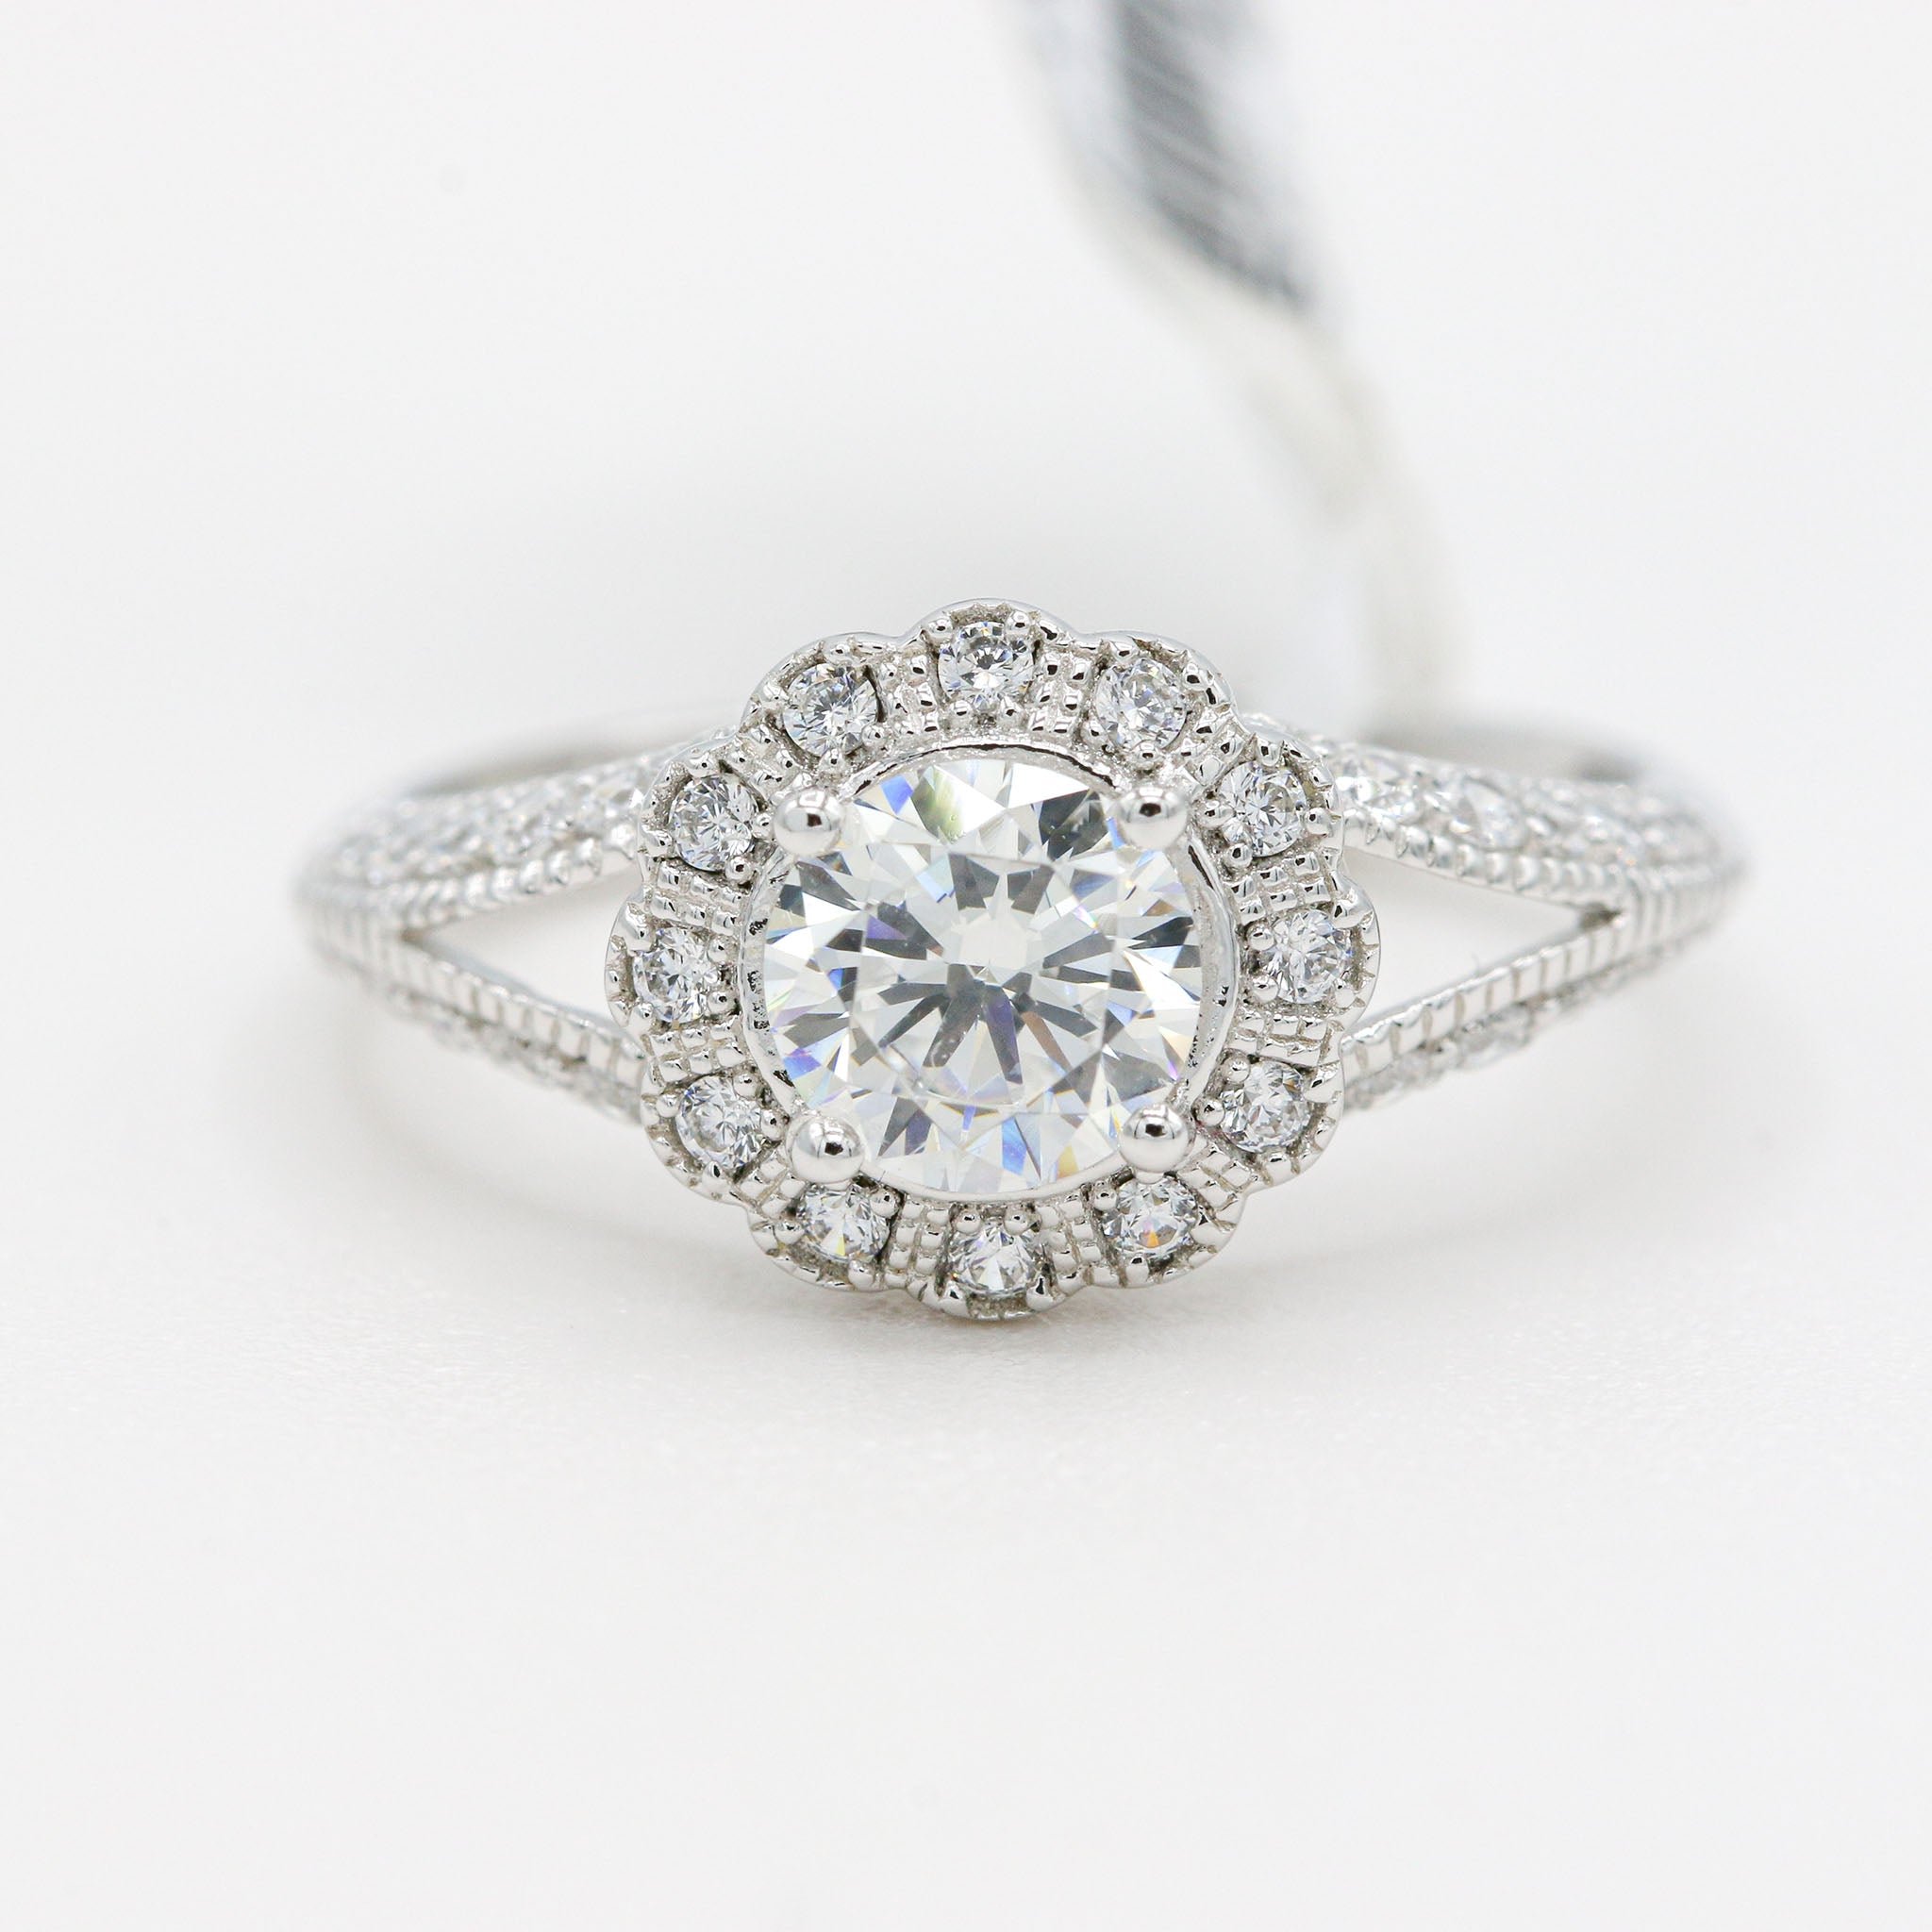 Stunning Lafonn Sterling Silver Bonded in Platinum Vintage Bridal Ring (1.24ct Simulated Diamonds)